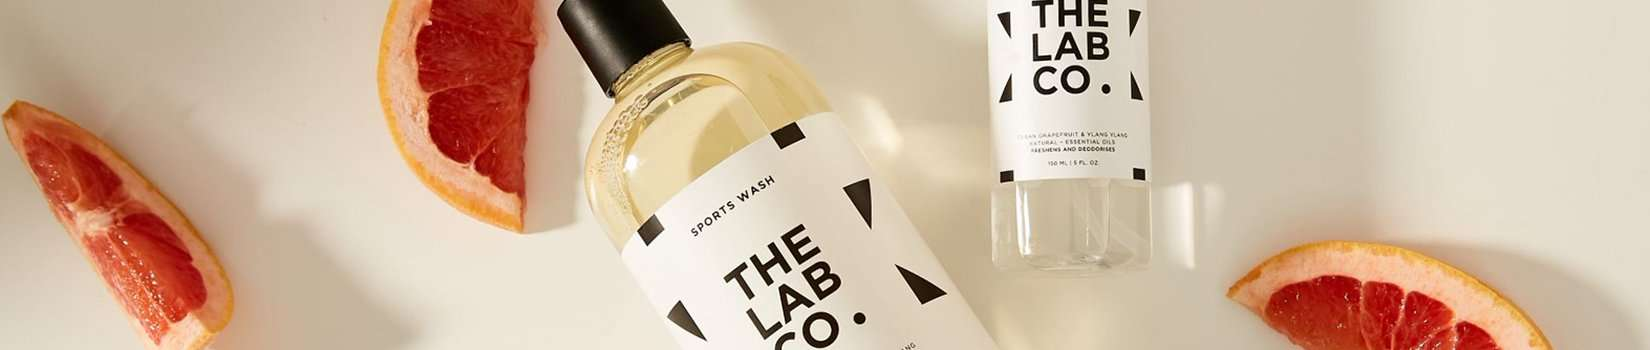 The Lab Co.